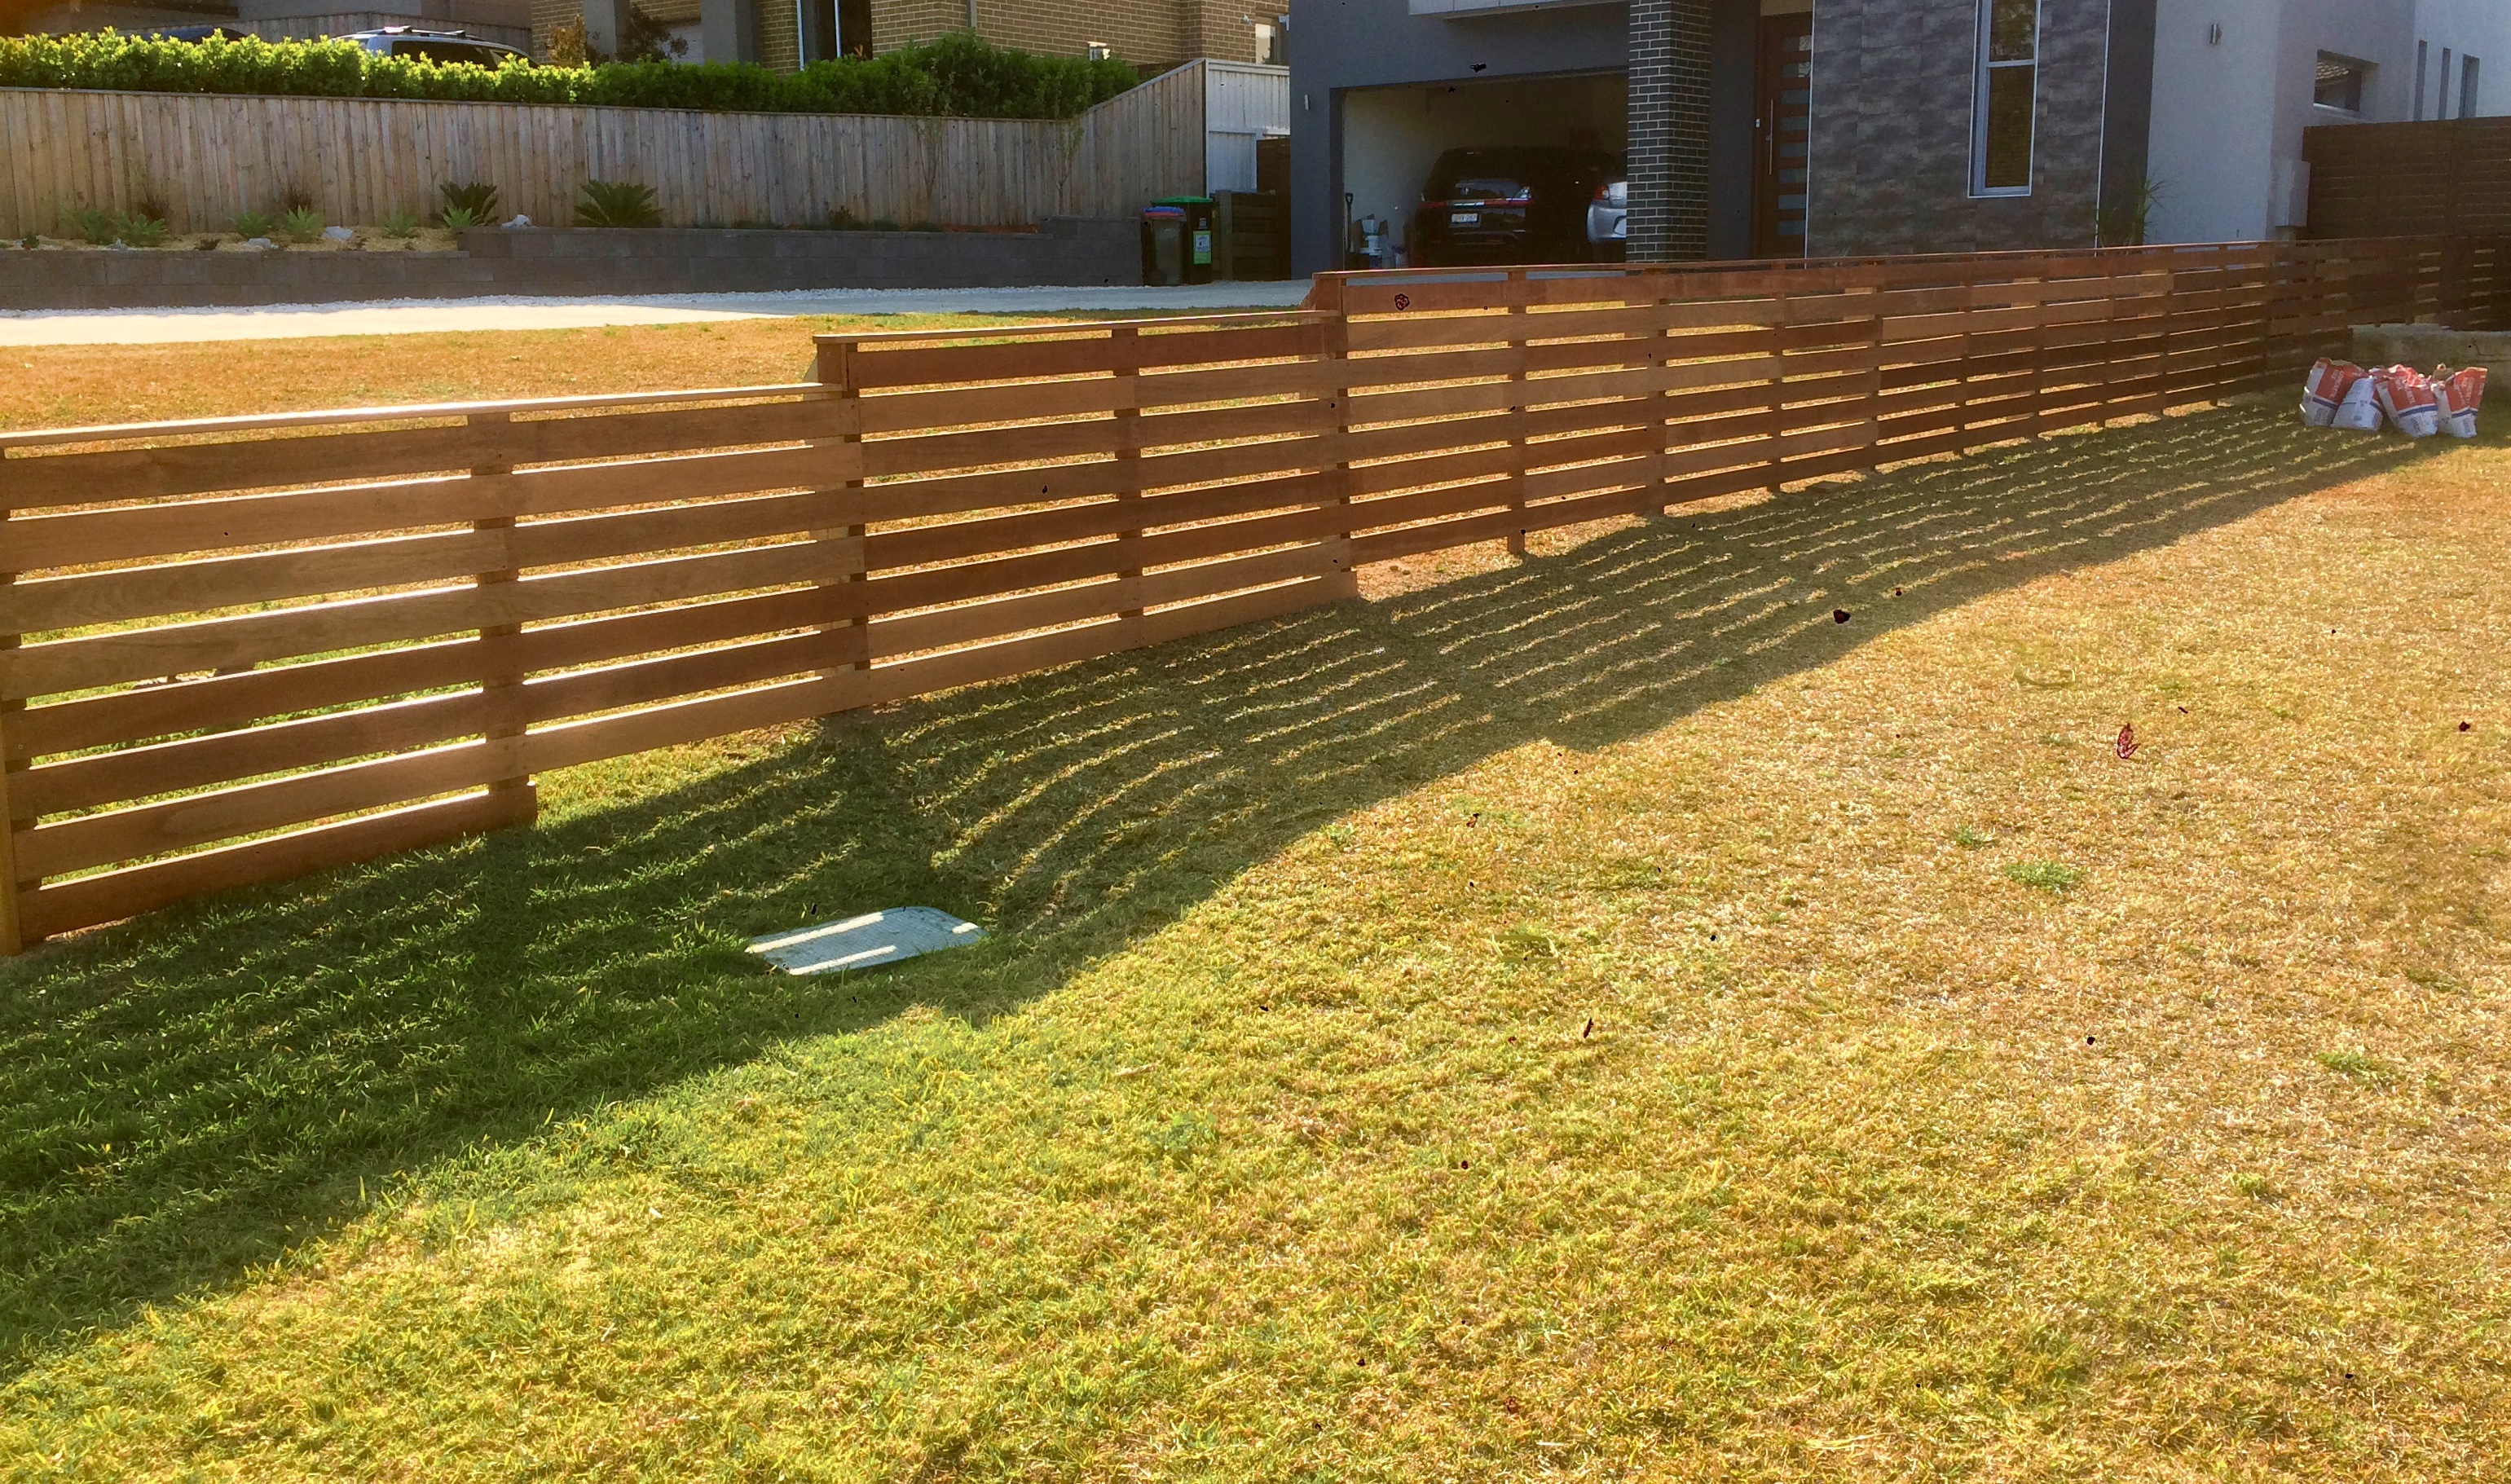 Horitontal Slat Fence